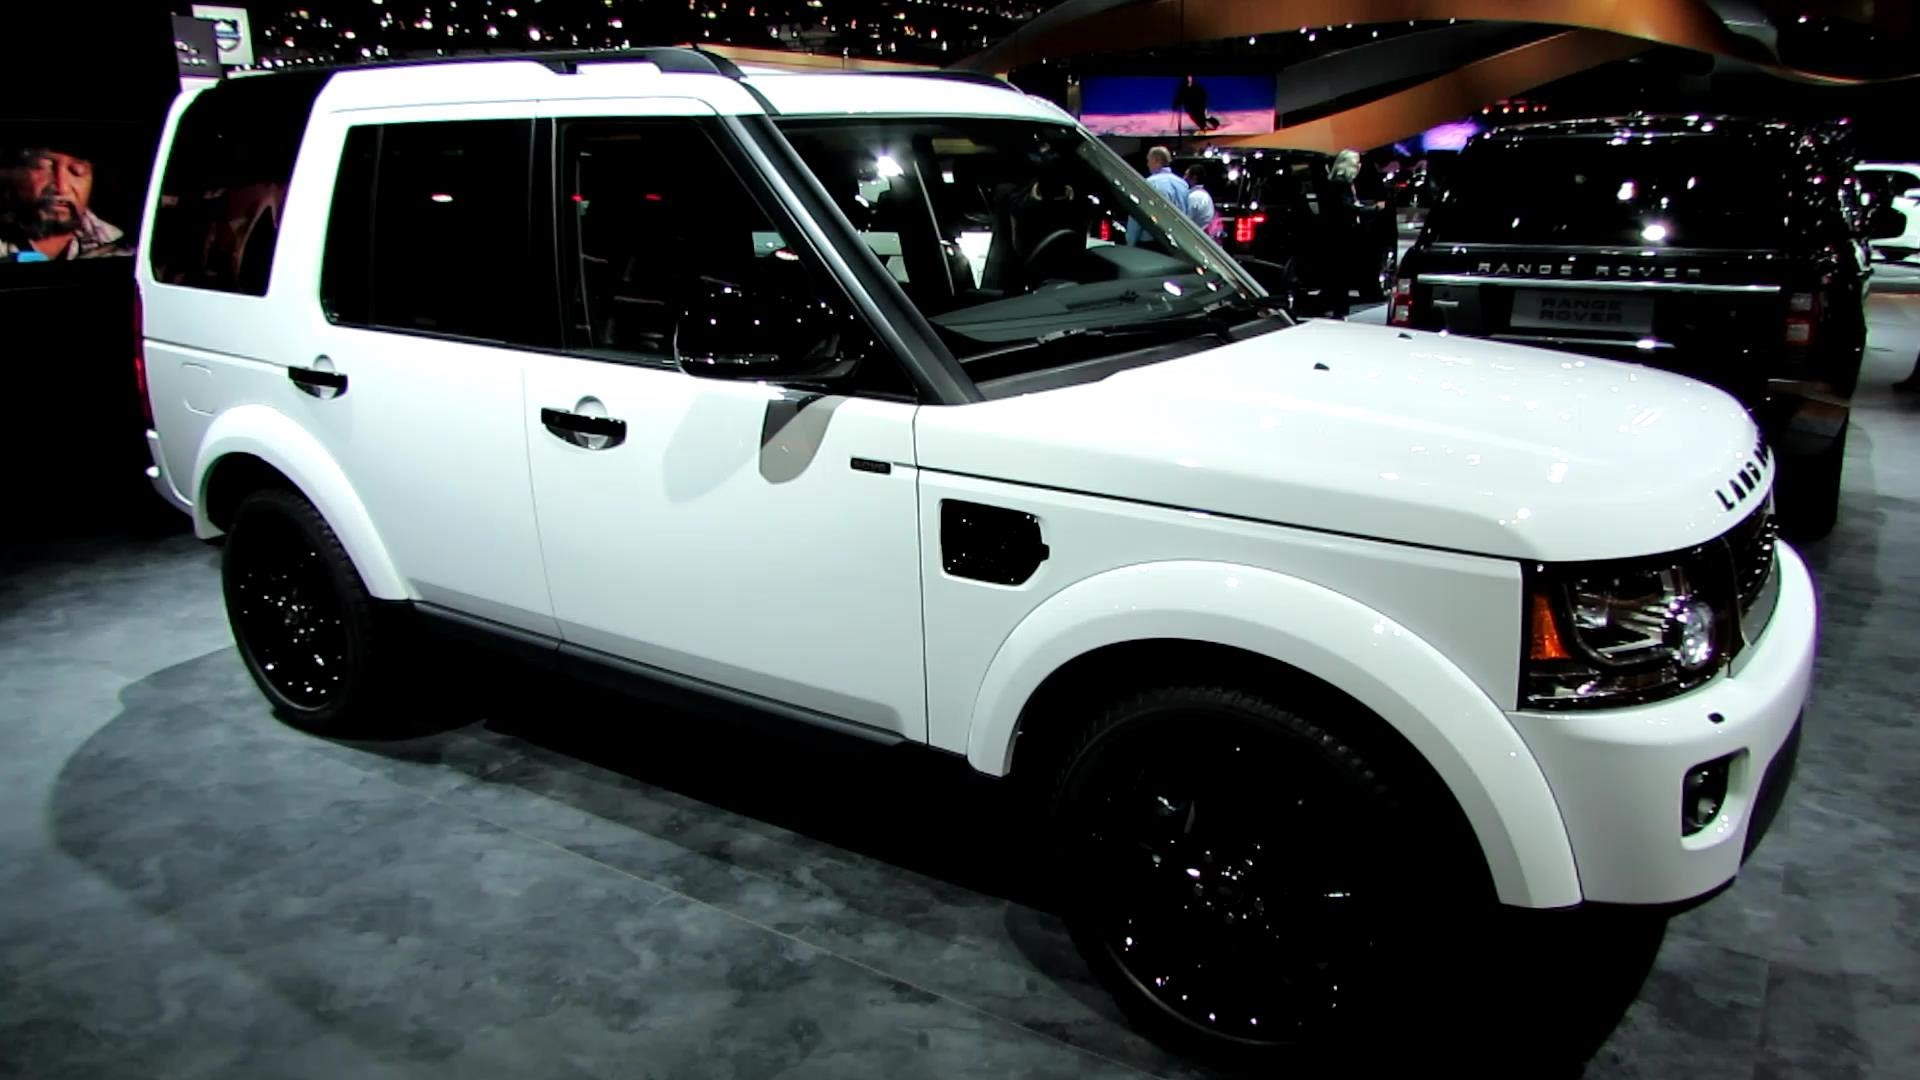 rear cost cars open hse test trunk photos and half reviews drives landrover land of rover white